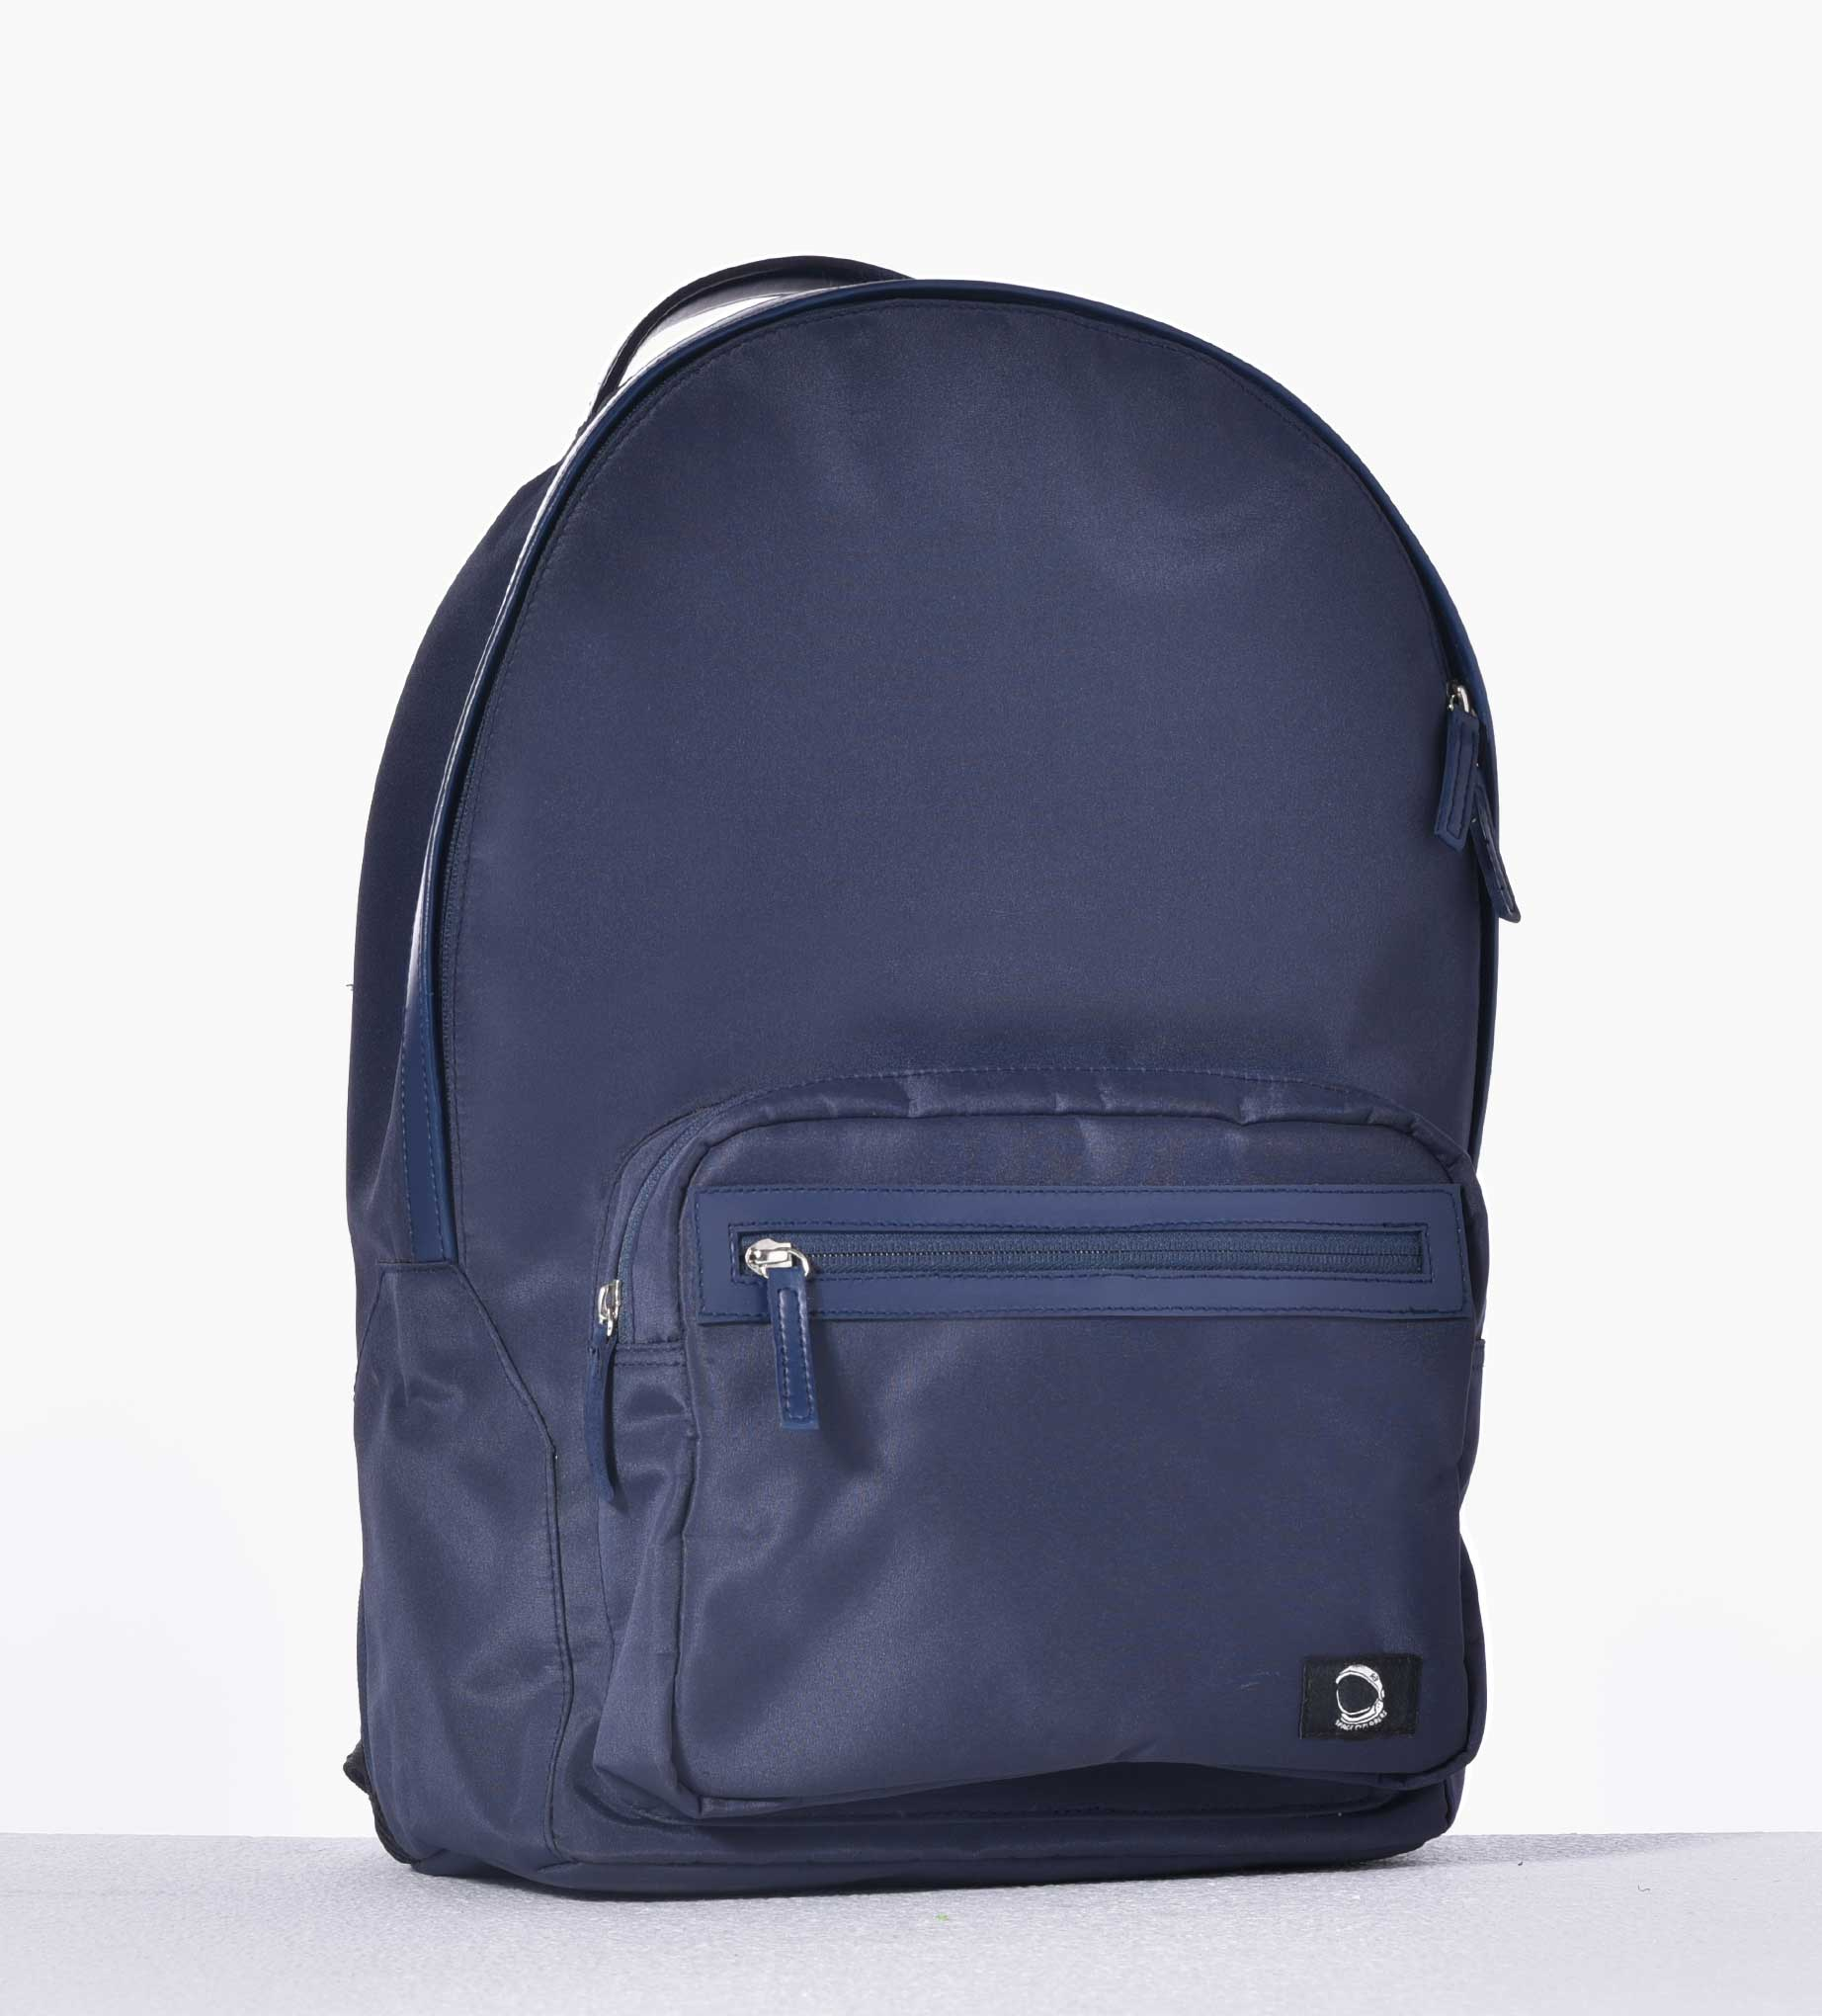 5.1 Navy Backpack